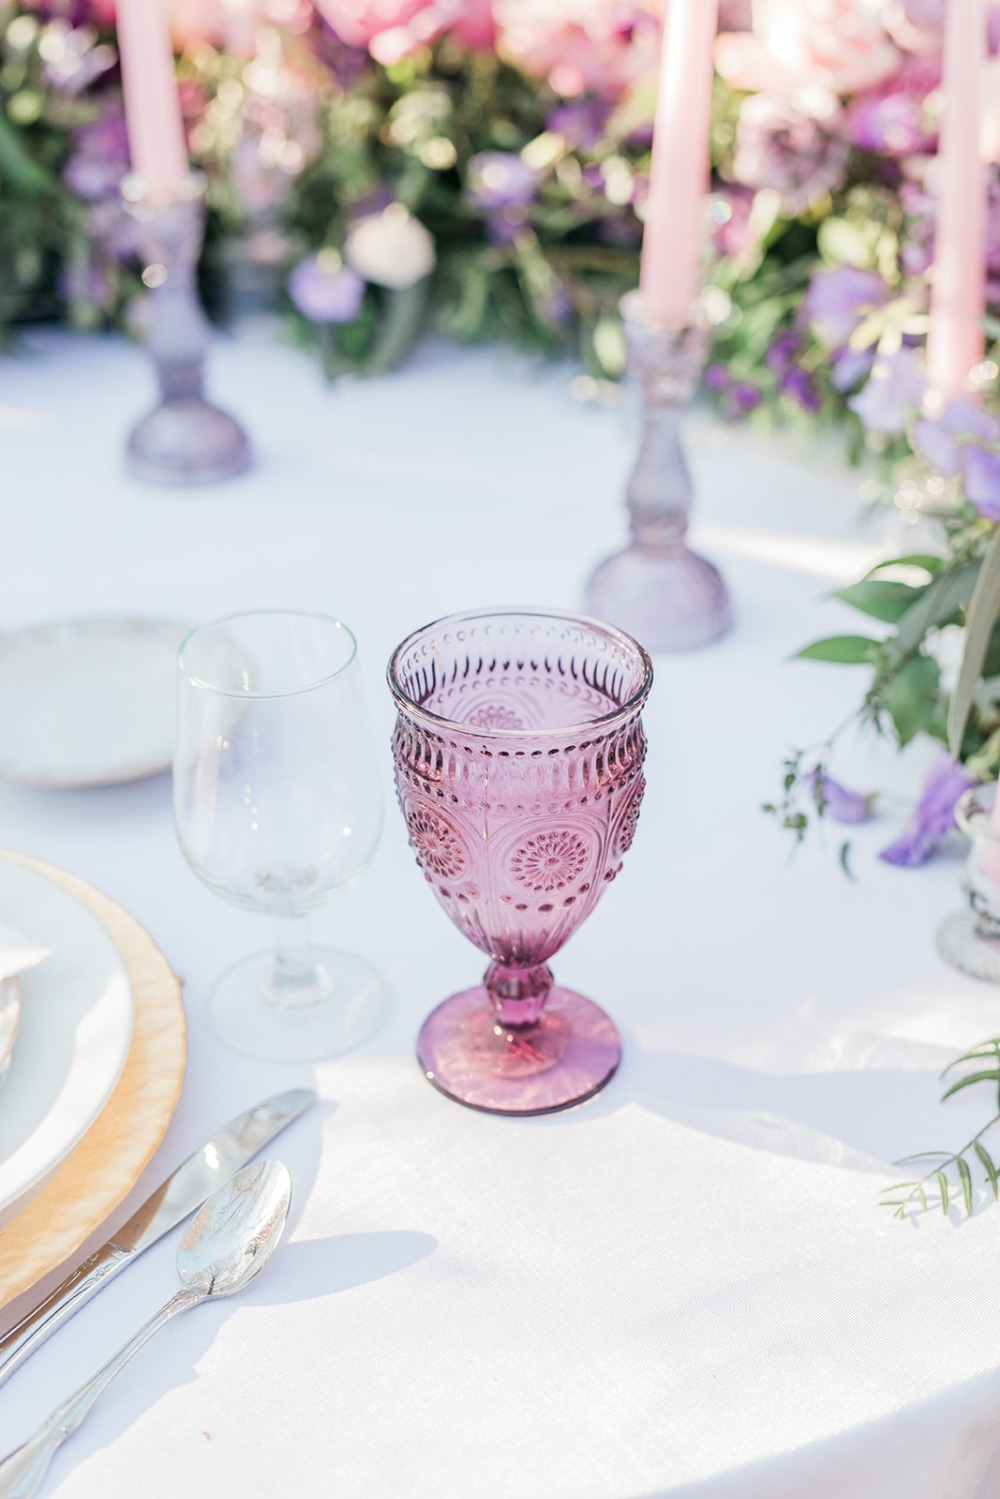 glass goblet in pink